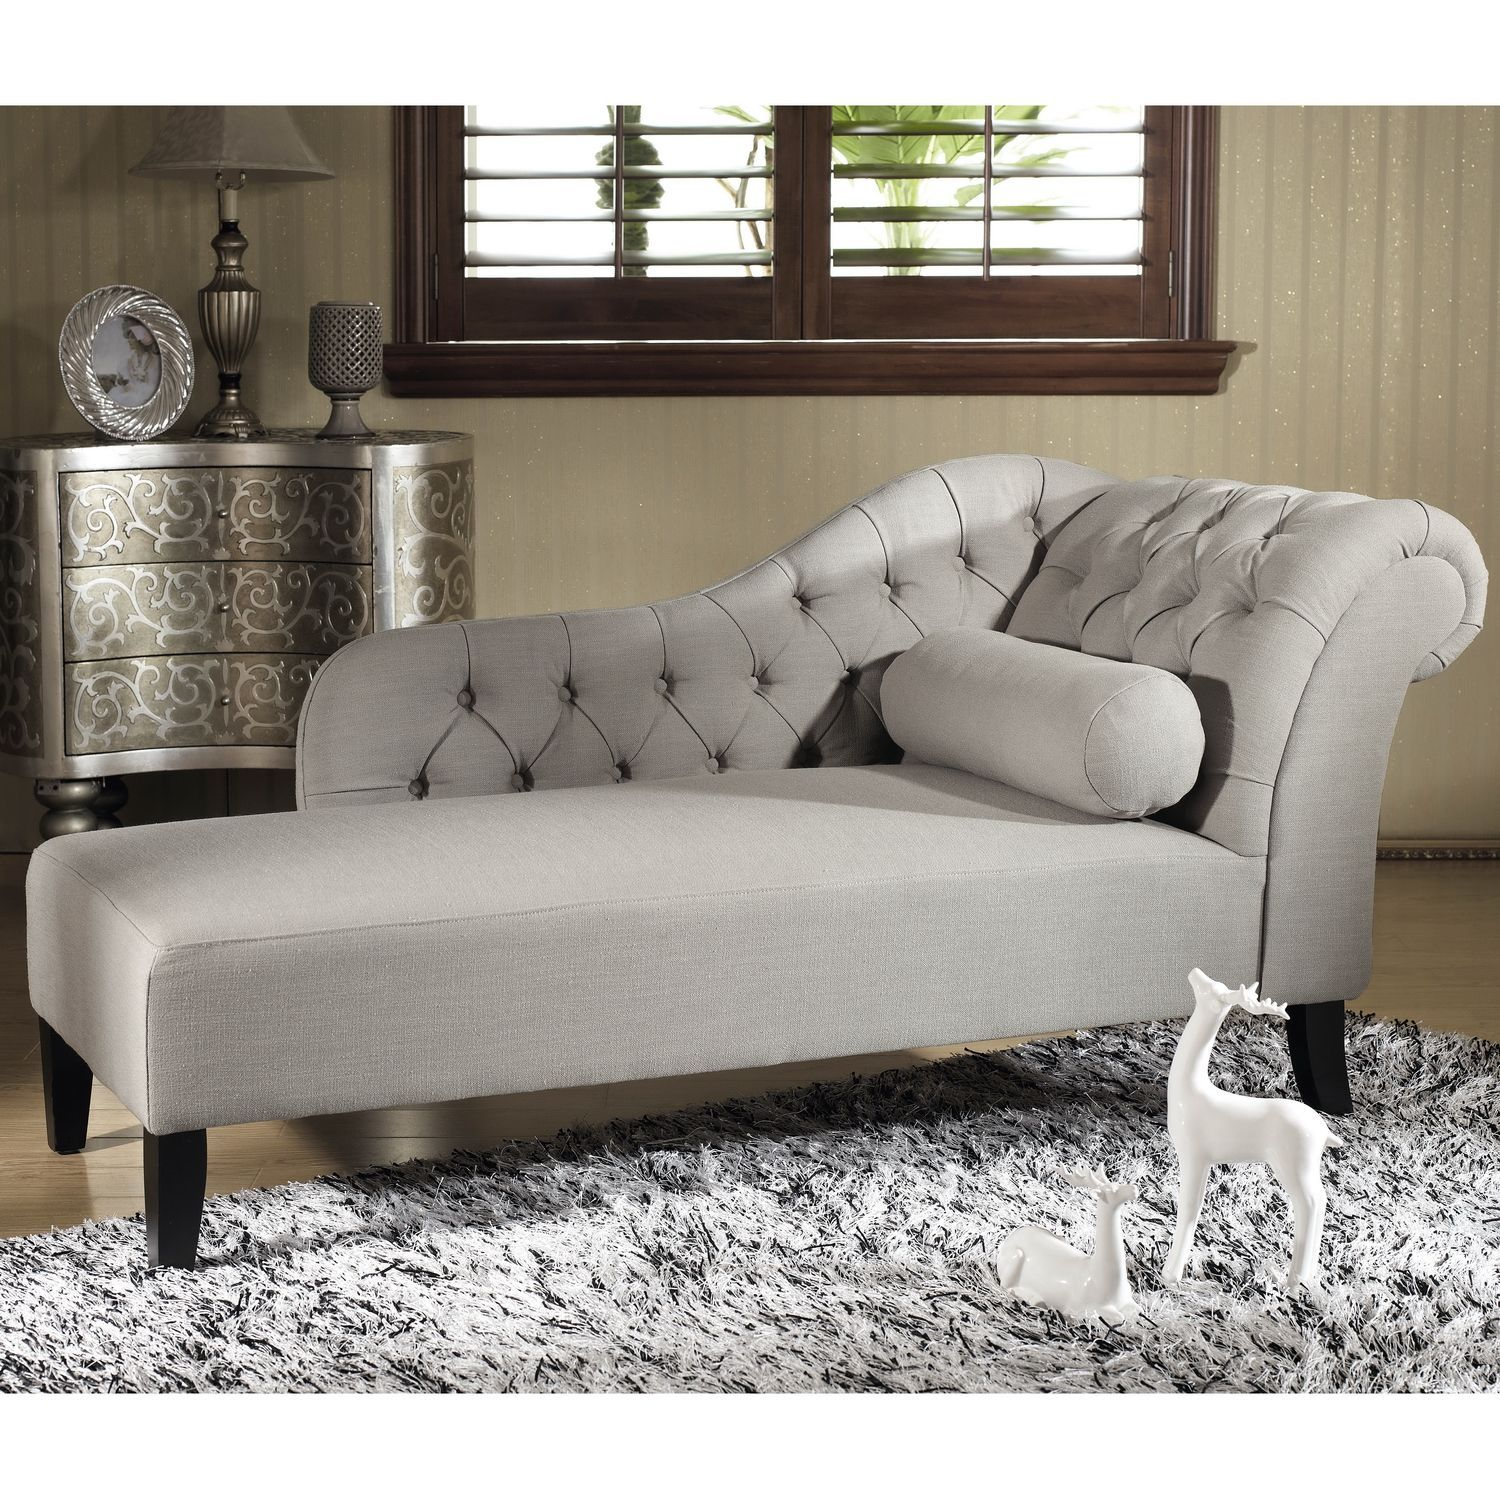 Baxton Studio Aphrodite Tufted Putty Gray Linen Modern Chaise Lounge